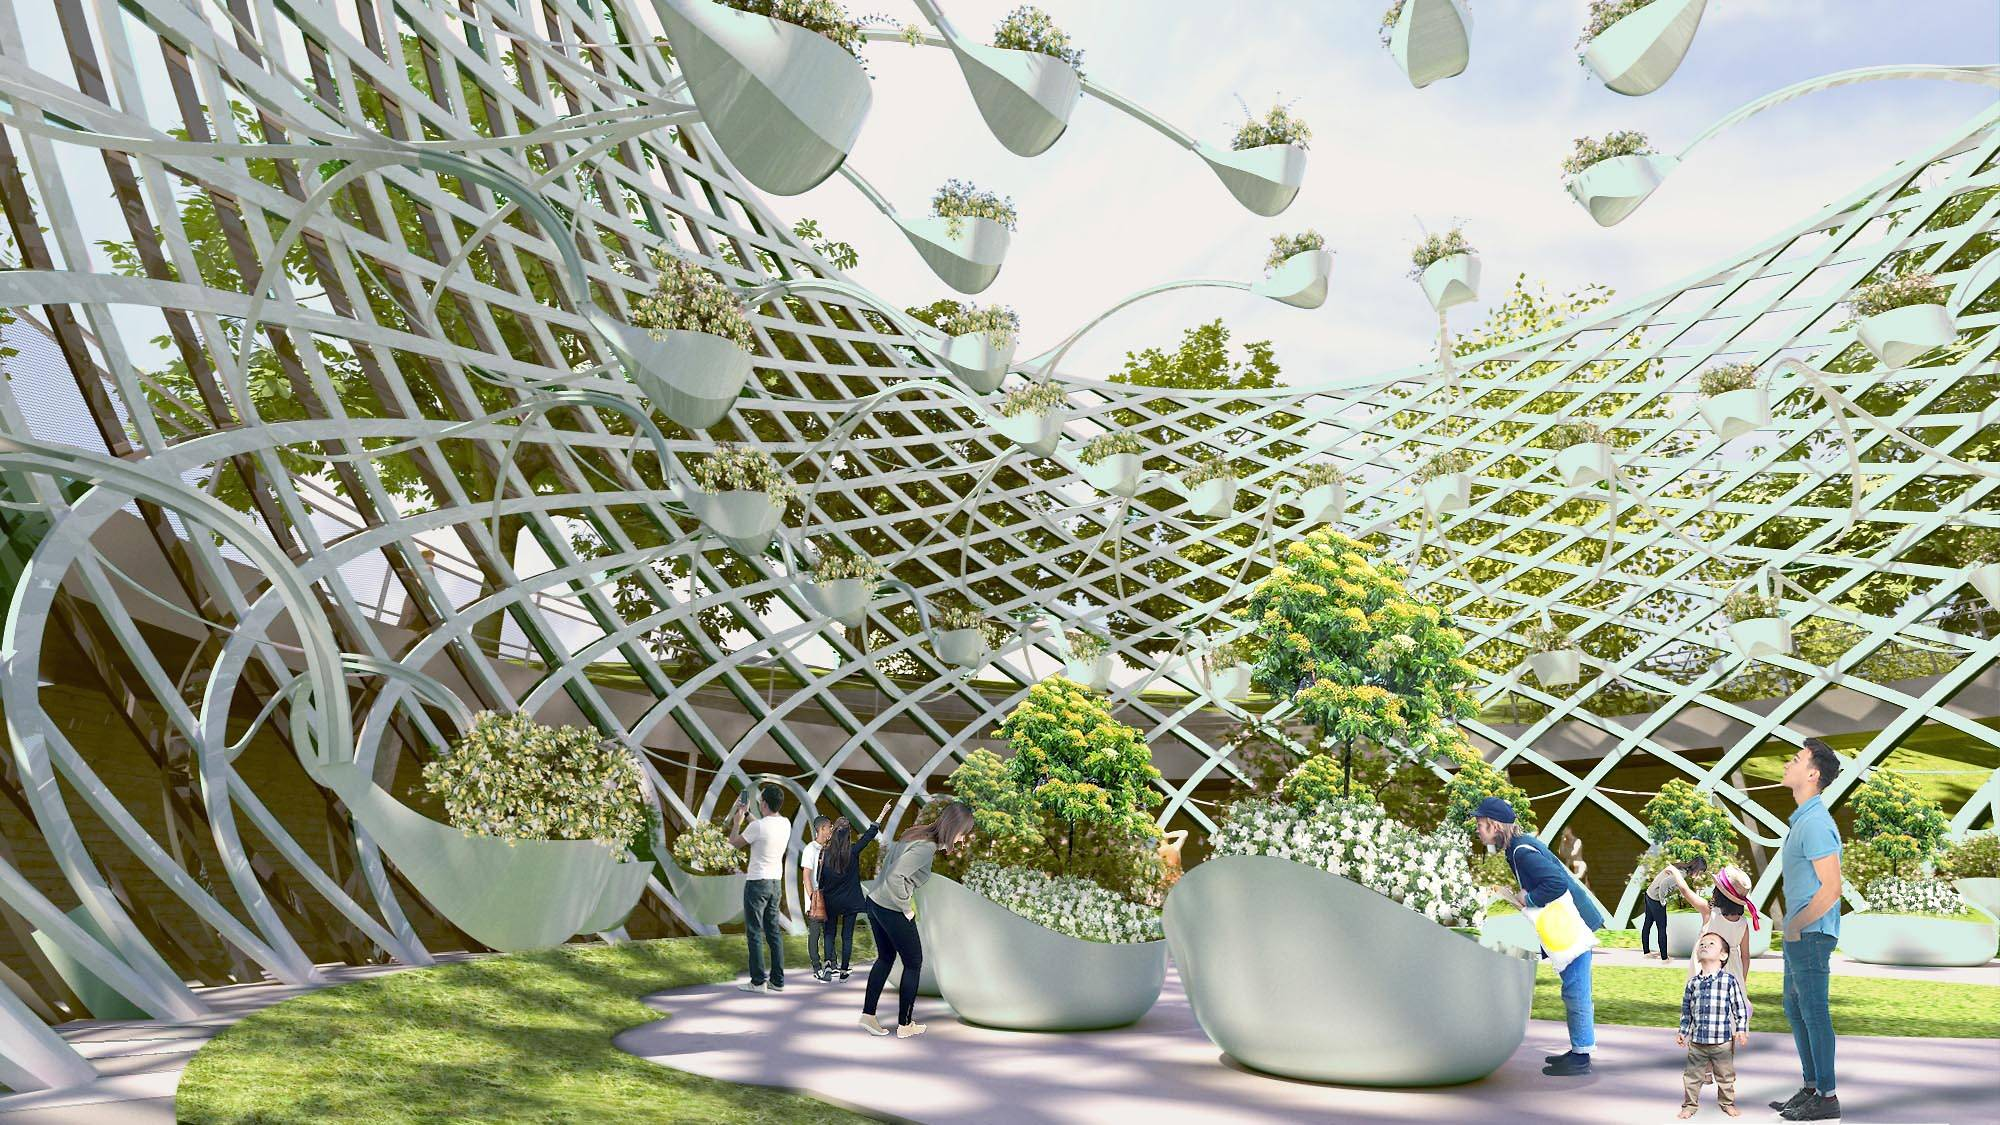 vessel-like-structures--which-features-fragrant-plants--as-part-of-the-rejuvenated-sentosa-sensoryscape